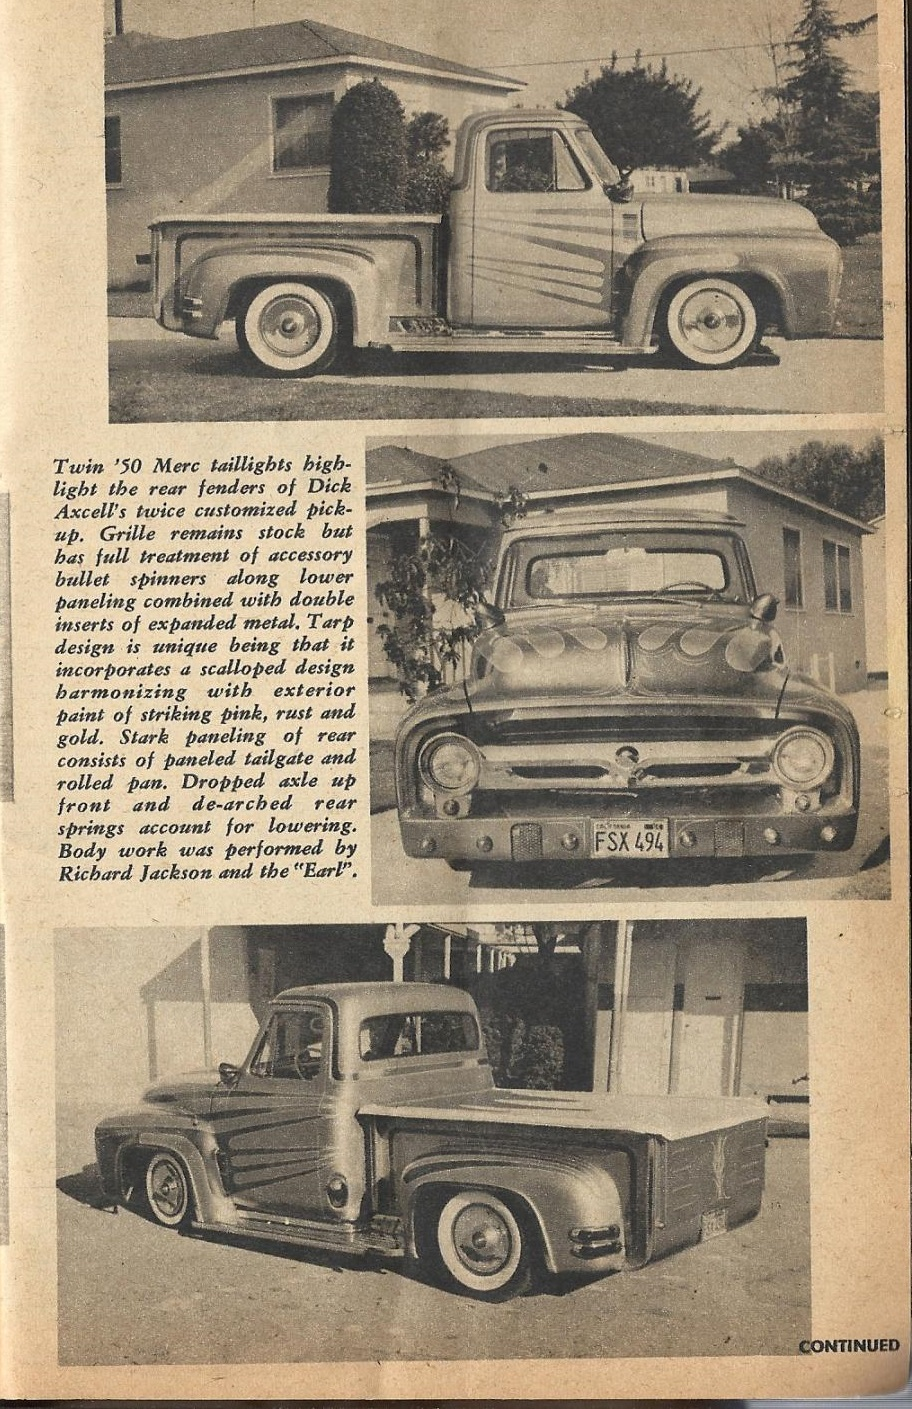 Car Craft - Special Pick Up June 1959 - Pick up Pictorial 2515